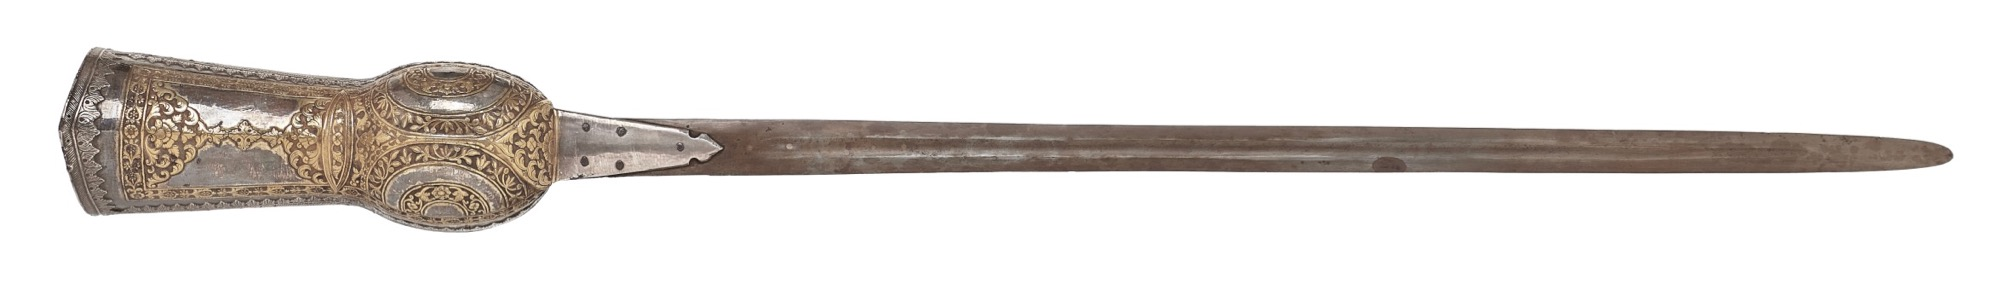 An Indian guantlet sword (pata) with Kutch style decoration